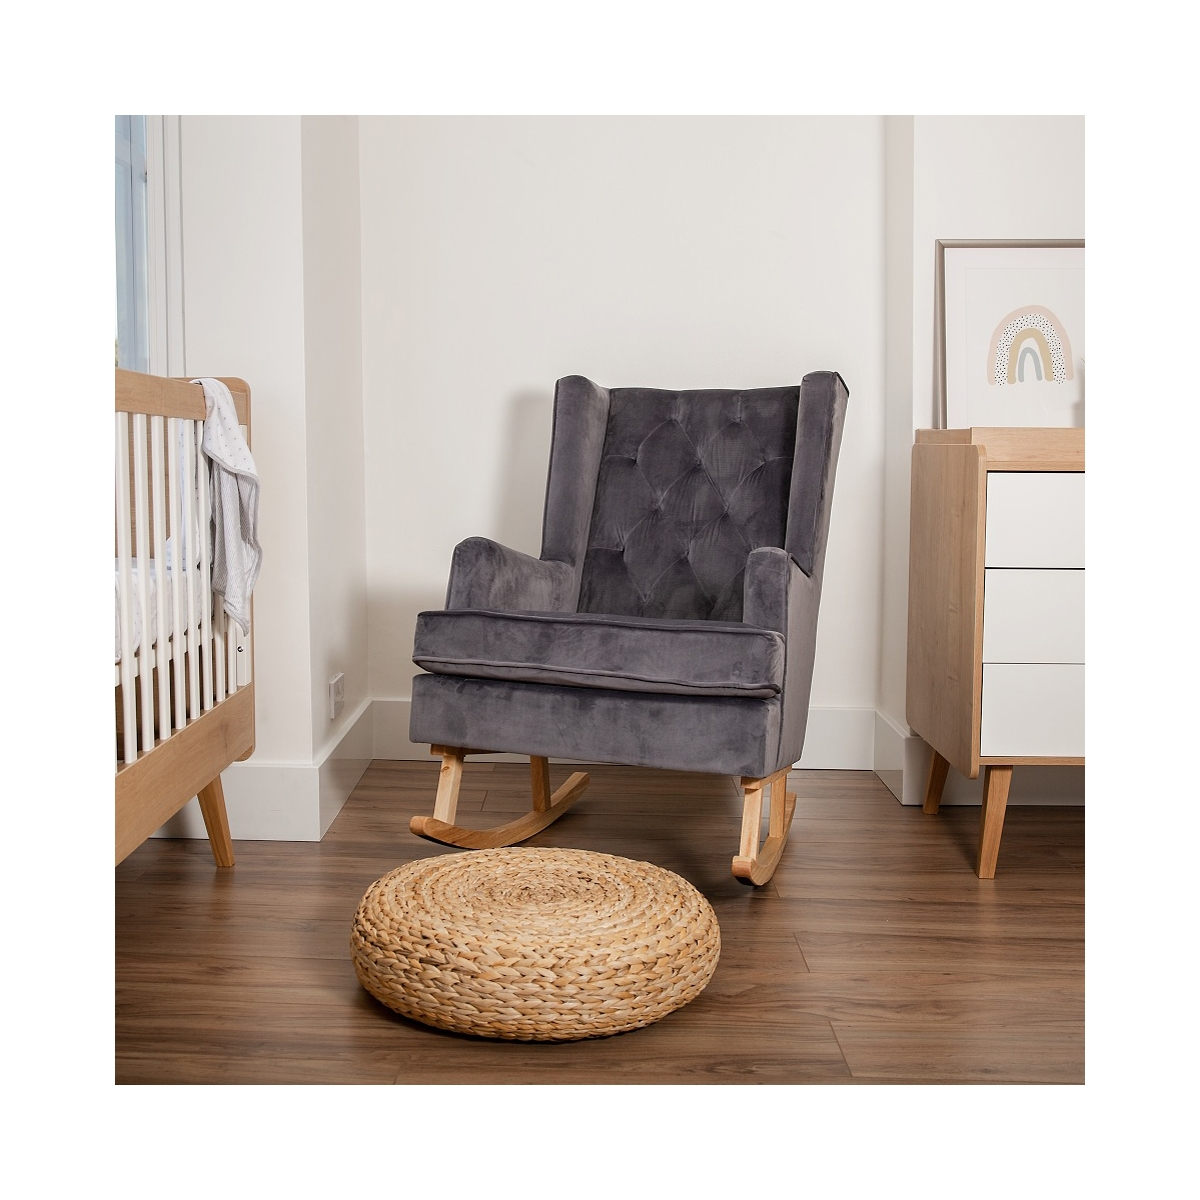 Convertible Nursing Rocking Chair-Midnight Grey/Natural Legs (NEW)